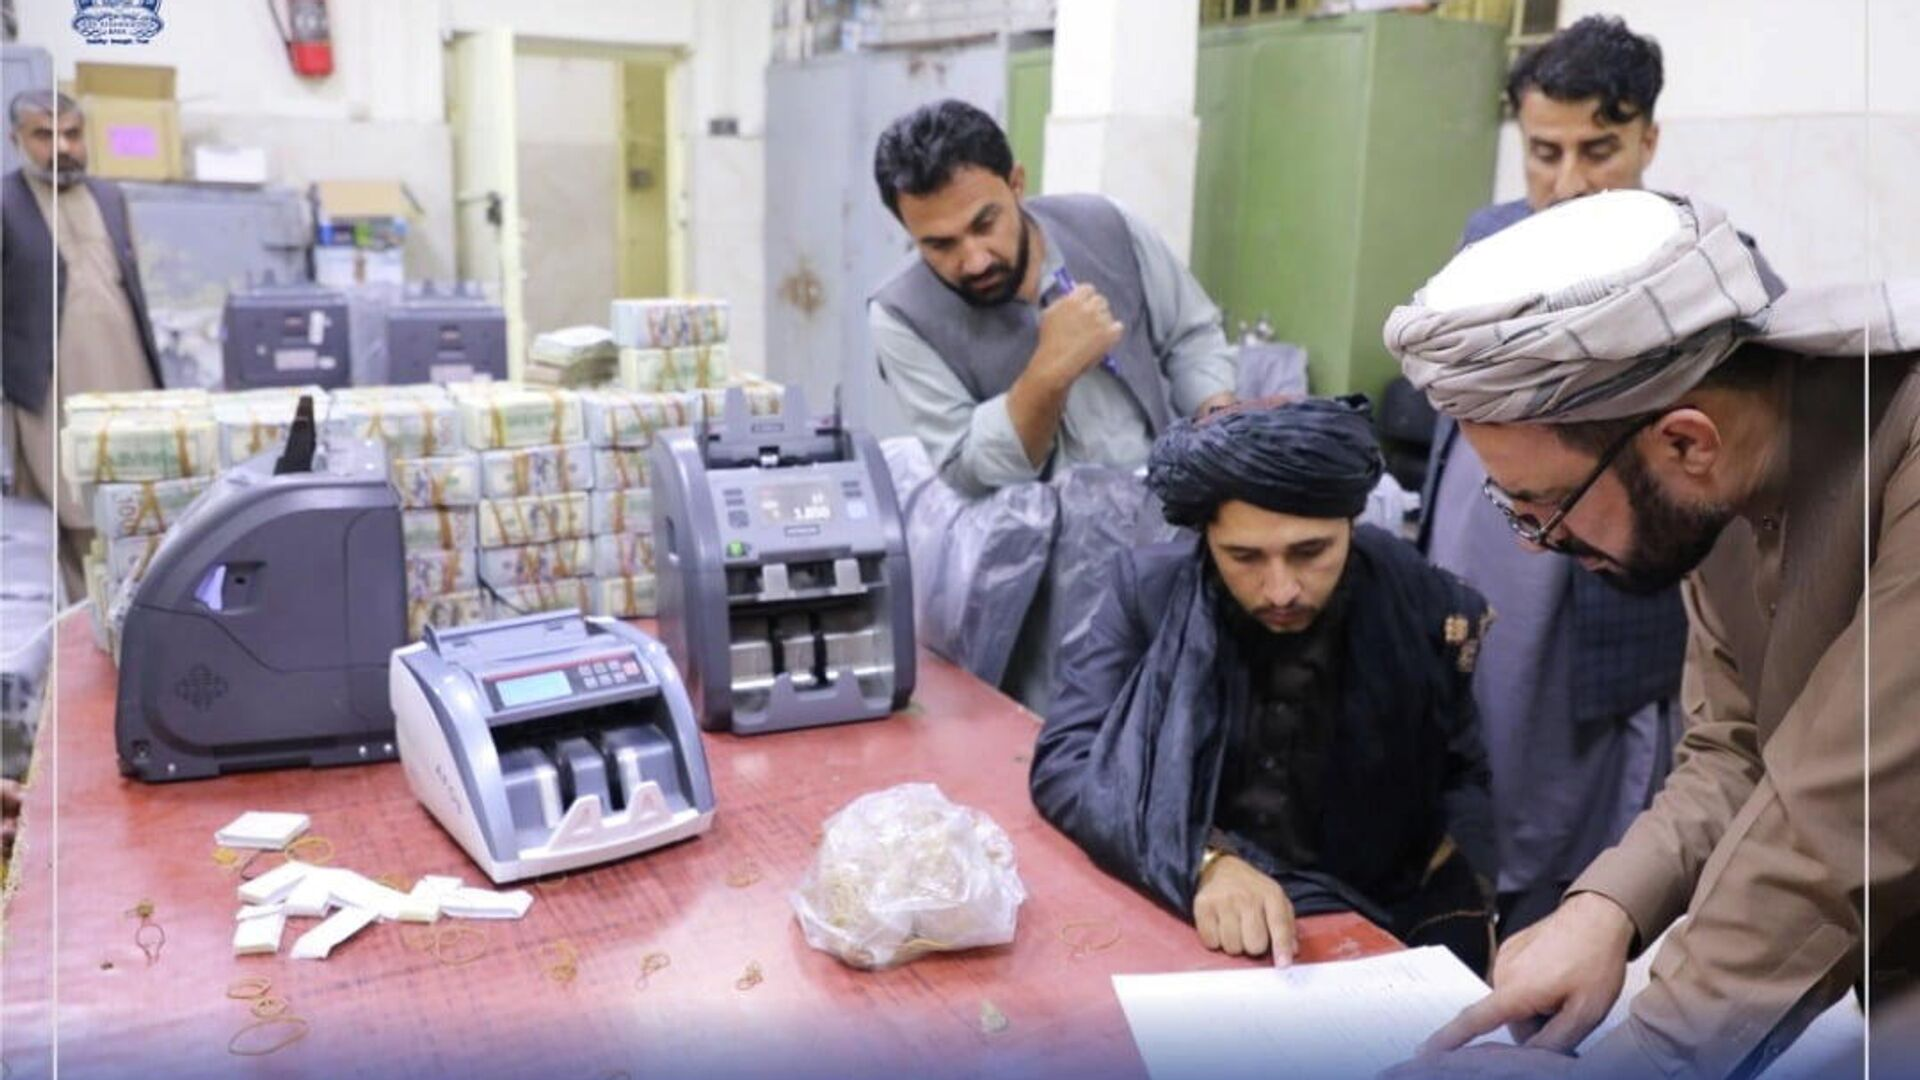 Men are pictured as Afghanistan's Taliban-controlled central bank seizes a large amount of money in cash and gold from former top government officials, including former vice president Amrullah Saleh, in Afghanistan, in this handout obtained by Reuters on September 15, 2021 - Sputnik International, 1920, 24.09.2021